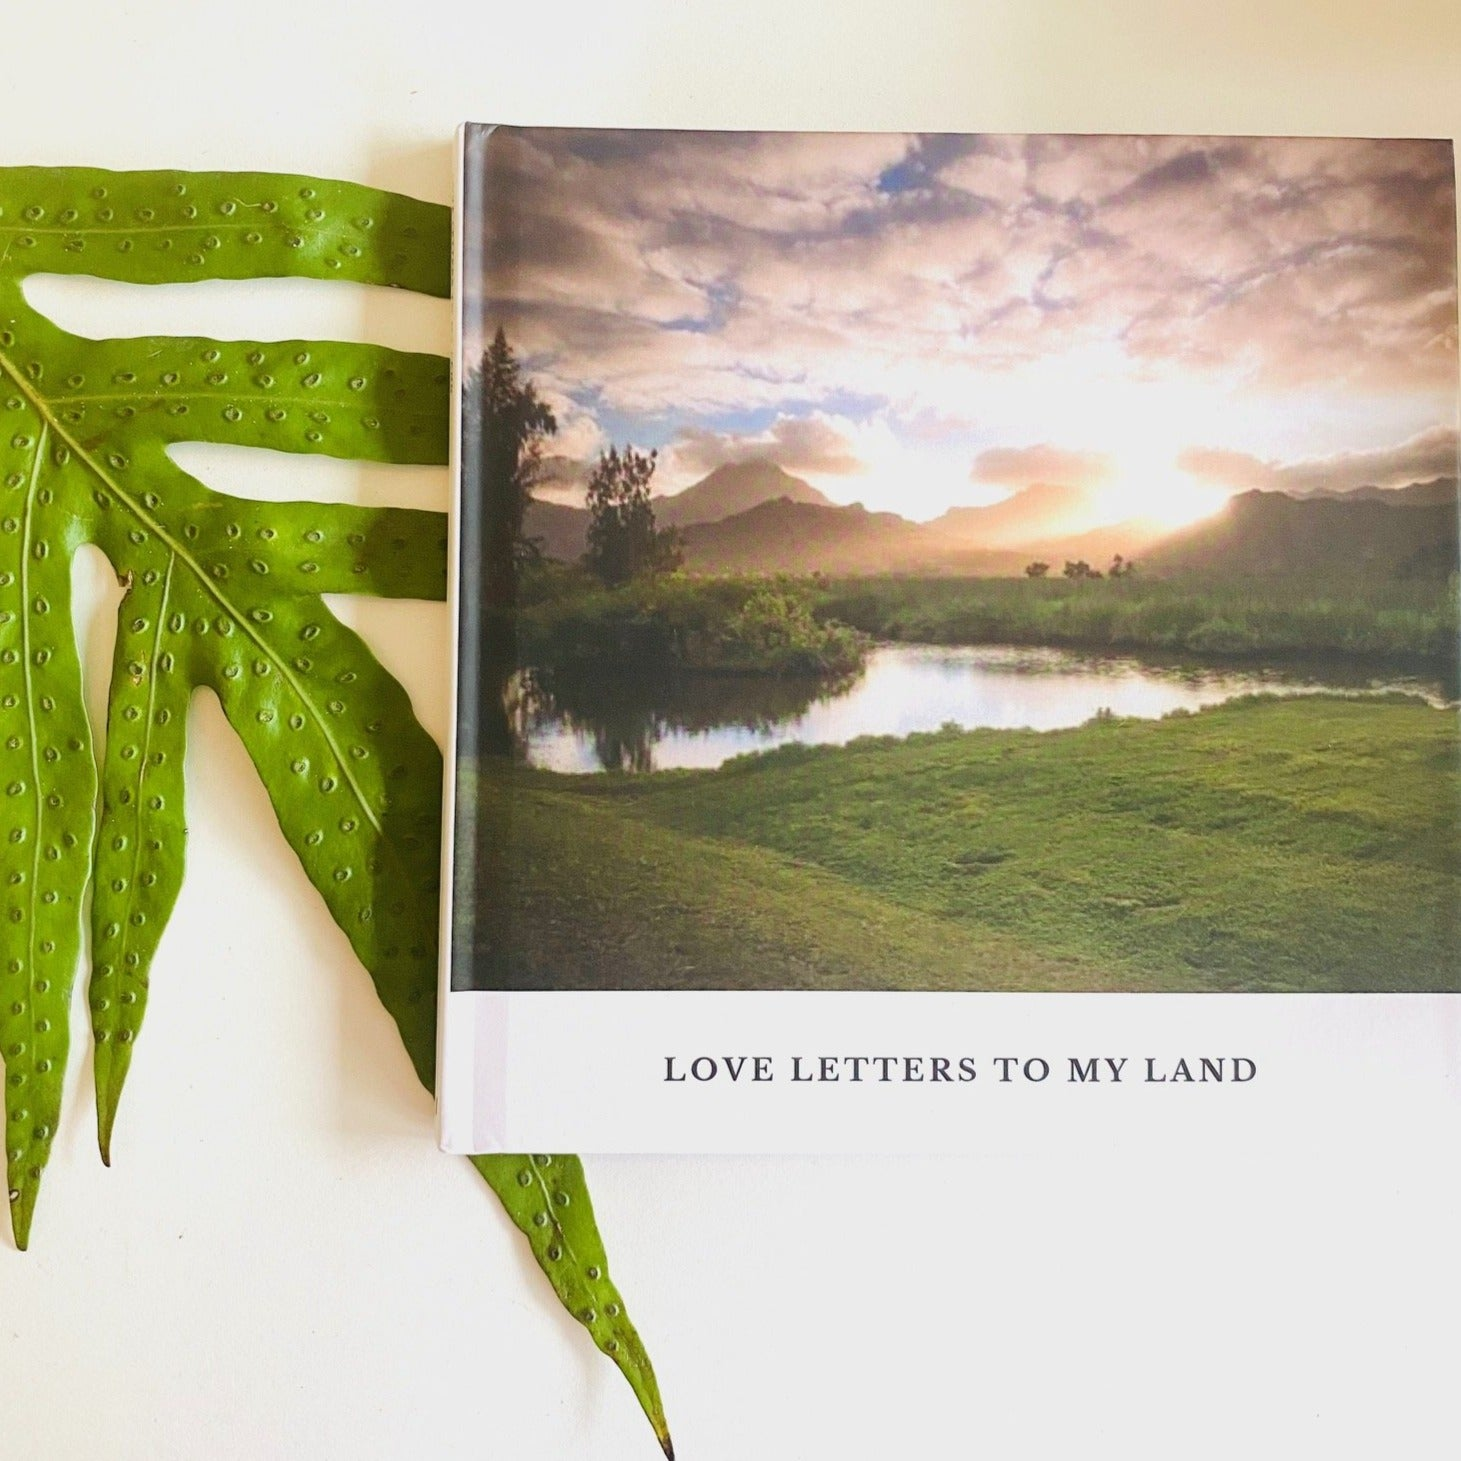 Love Letters to my Land